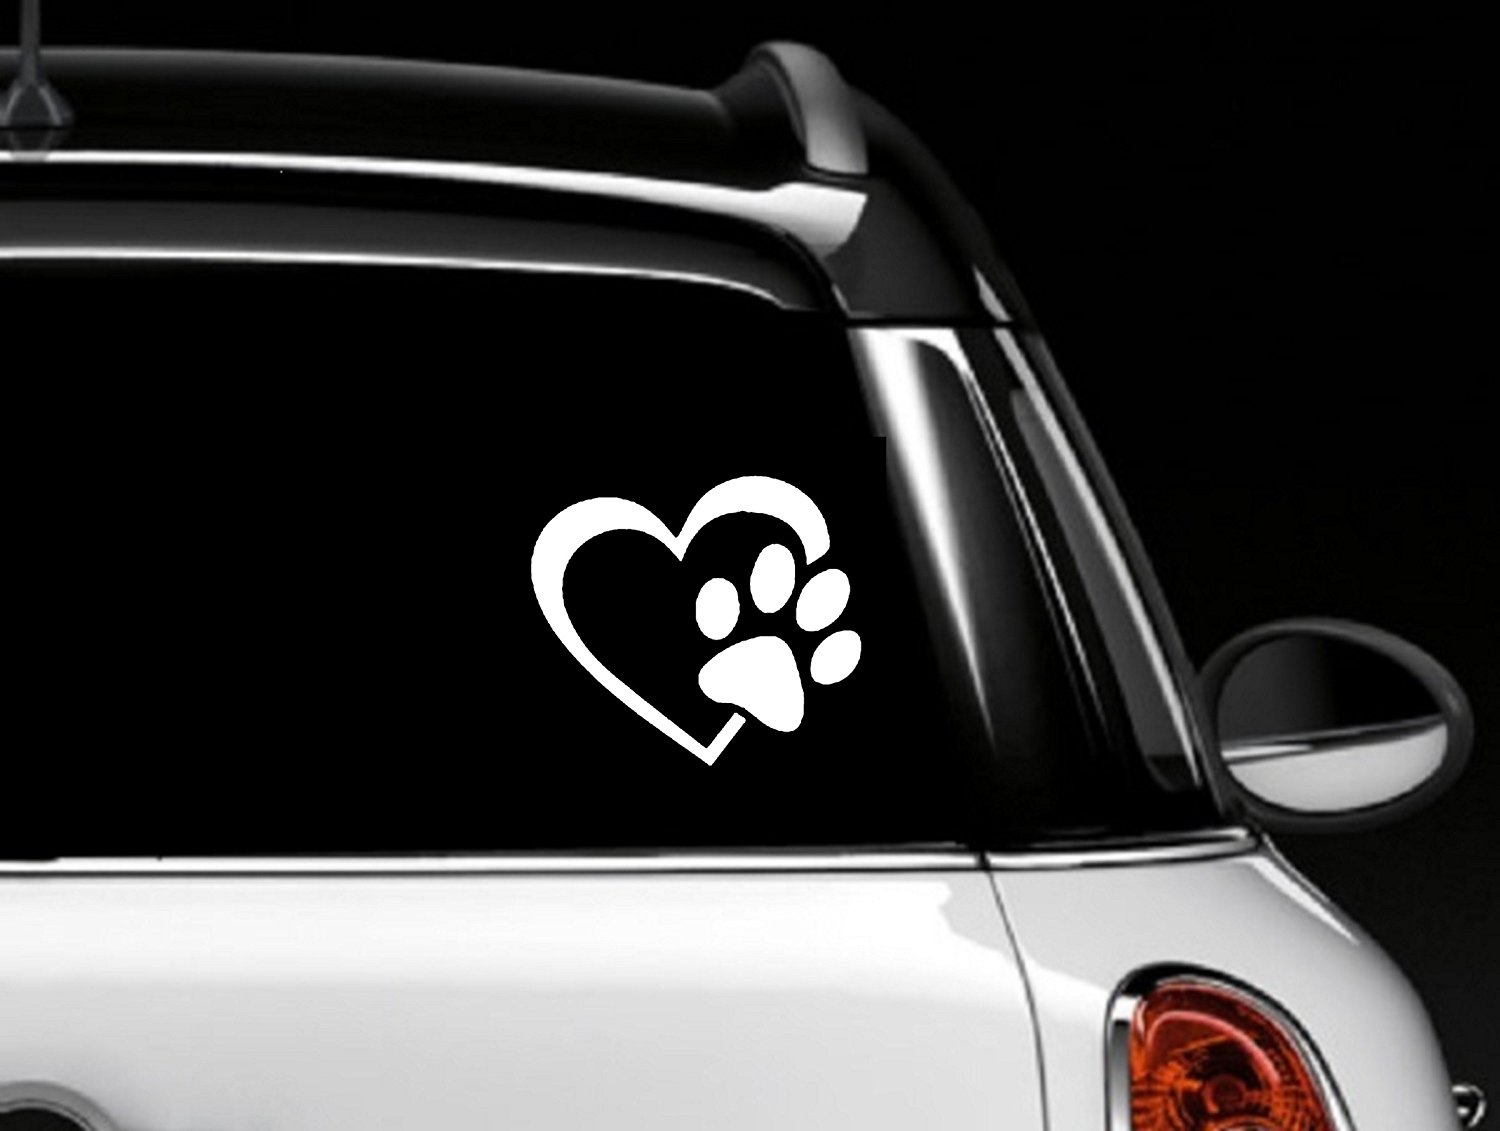 Best car sticker design - Picture Stickers